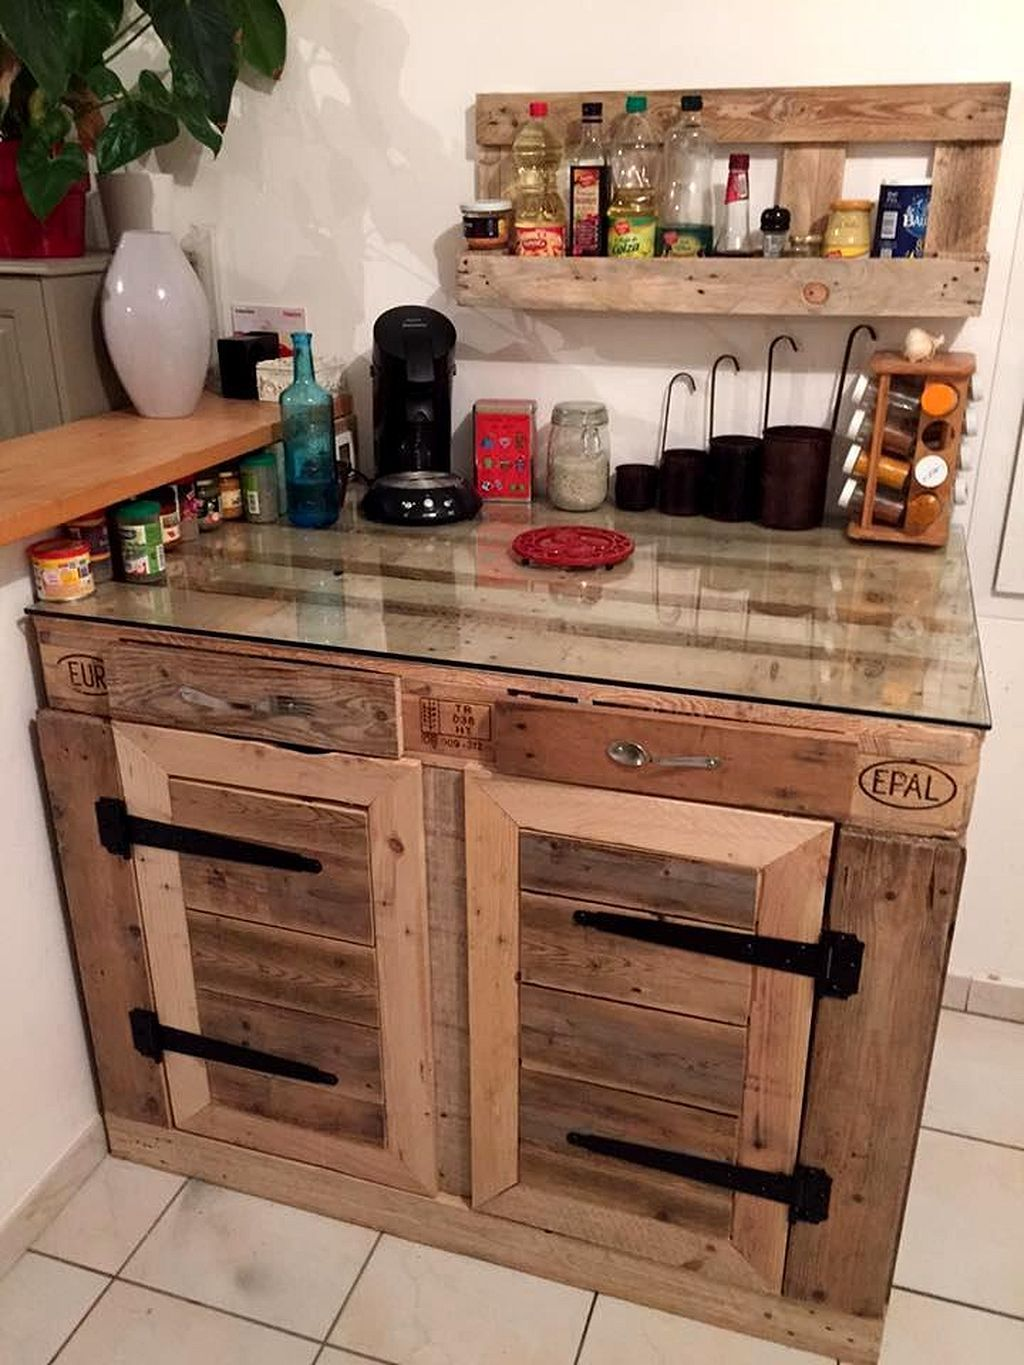 Great 30 Incredible Diy Kitchen Pallets Ideas You Should Not Miss